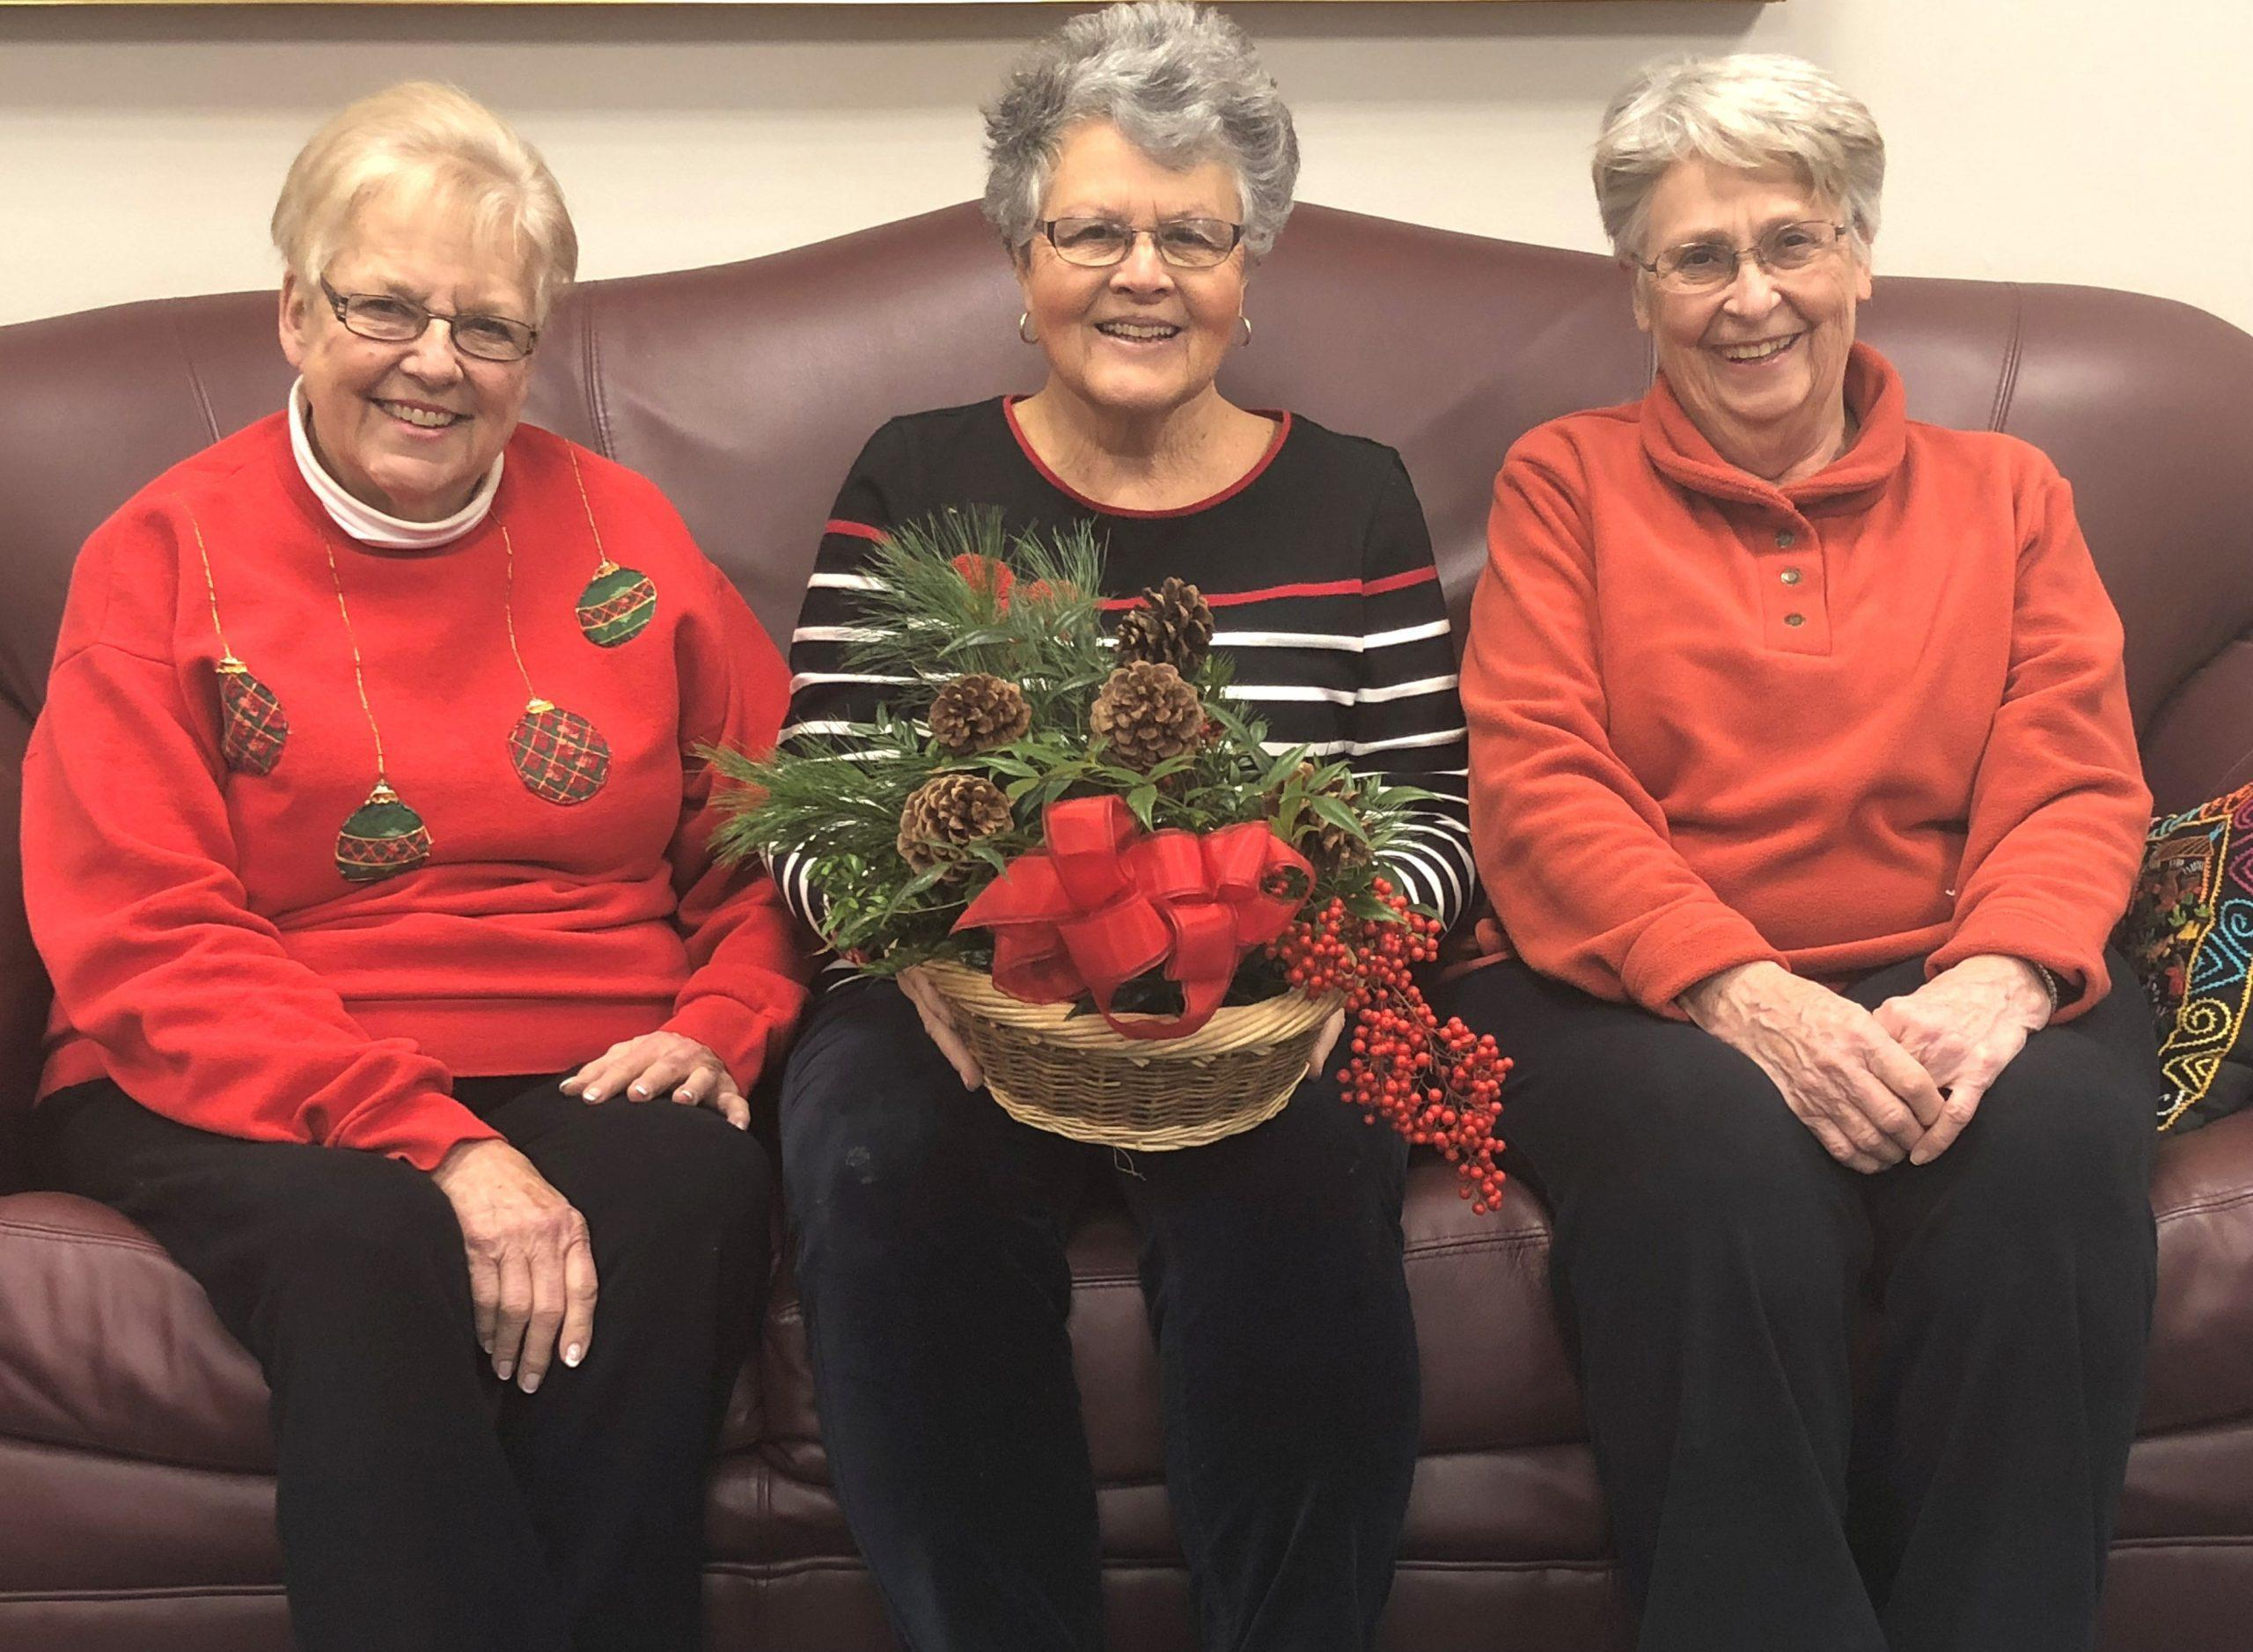 Photo of three members of the Bridgewater Garden Club sitting on a couch holding a holiday arrangement.